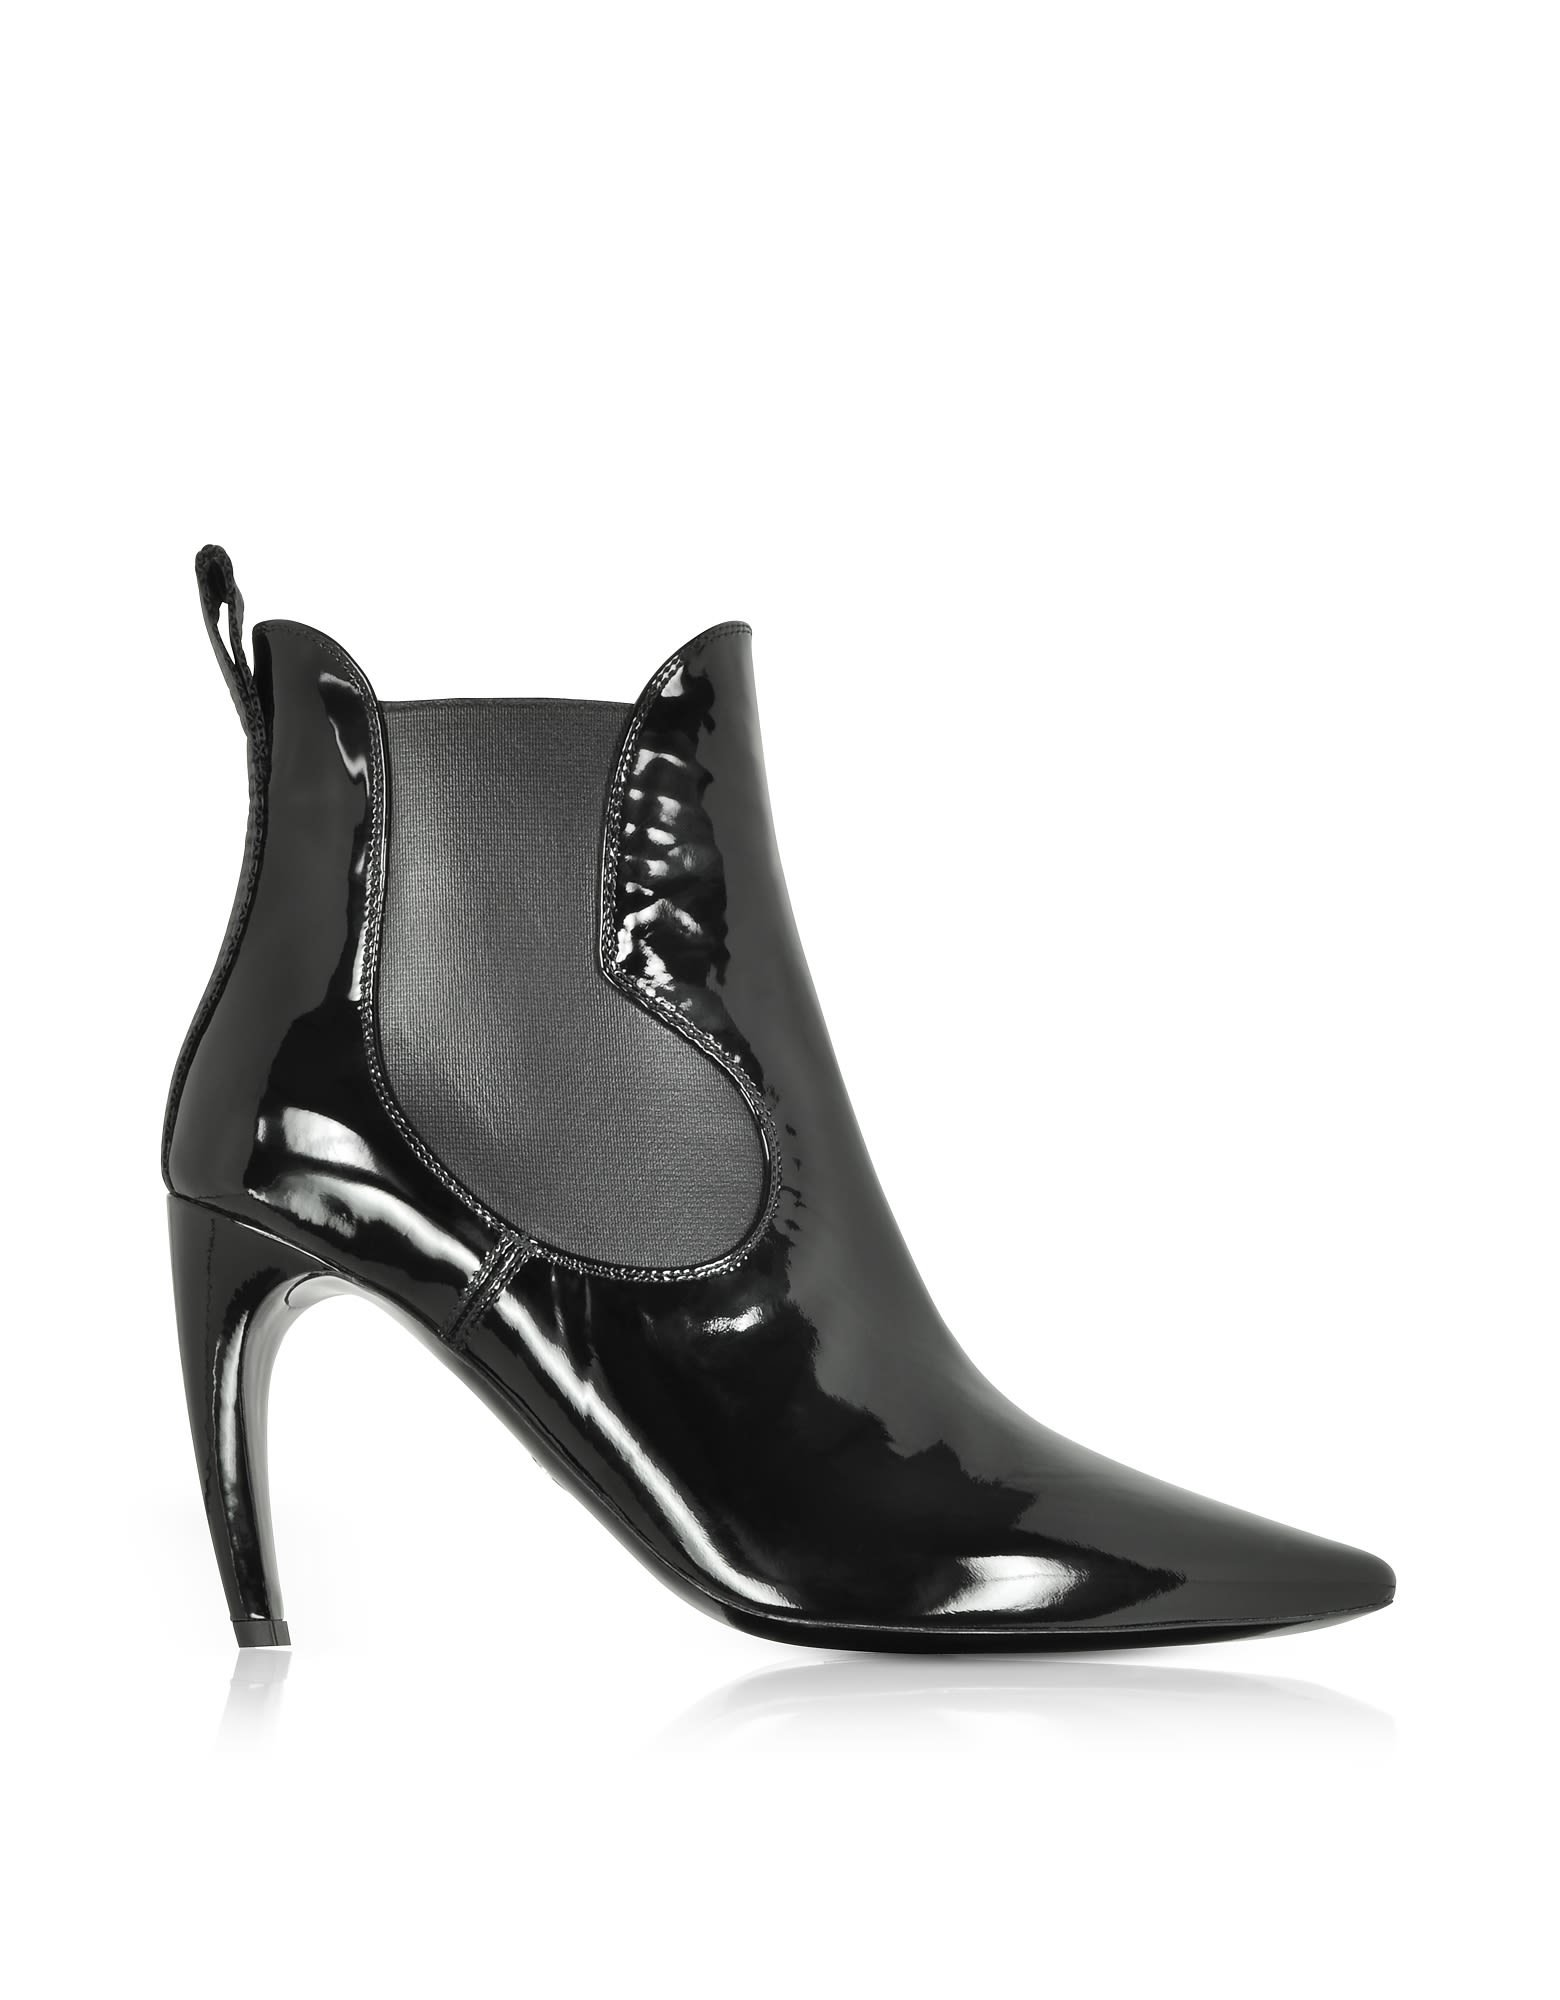 Proenza Schouler Black Patent Leather Boots